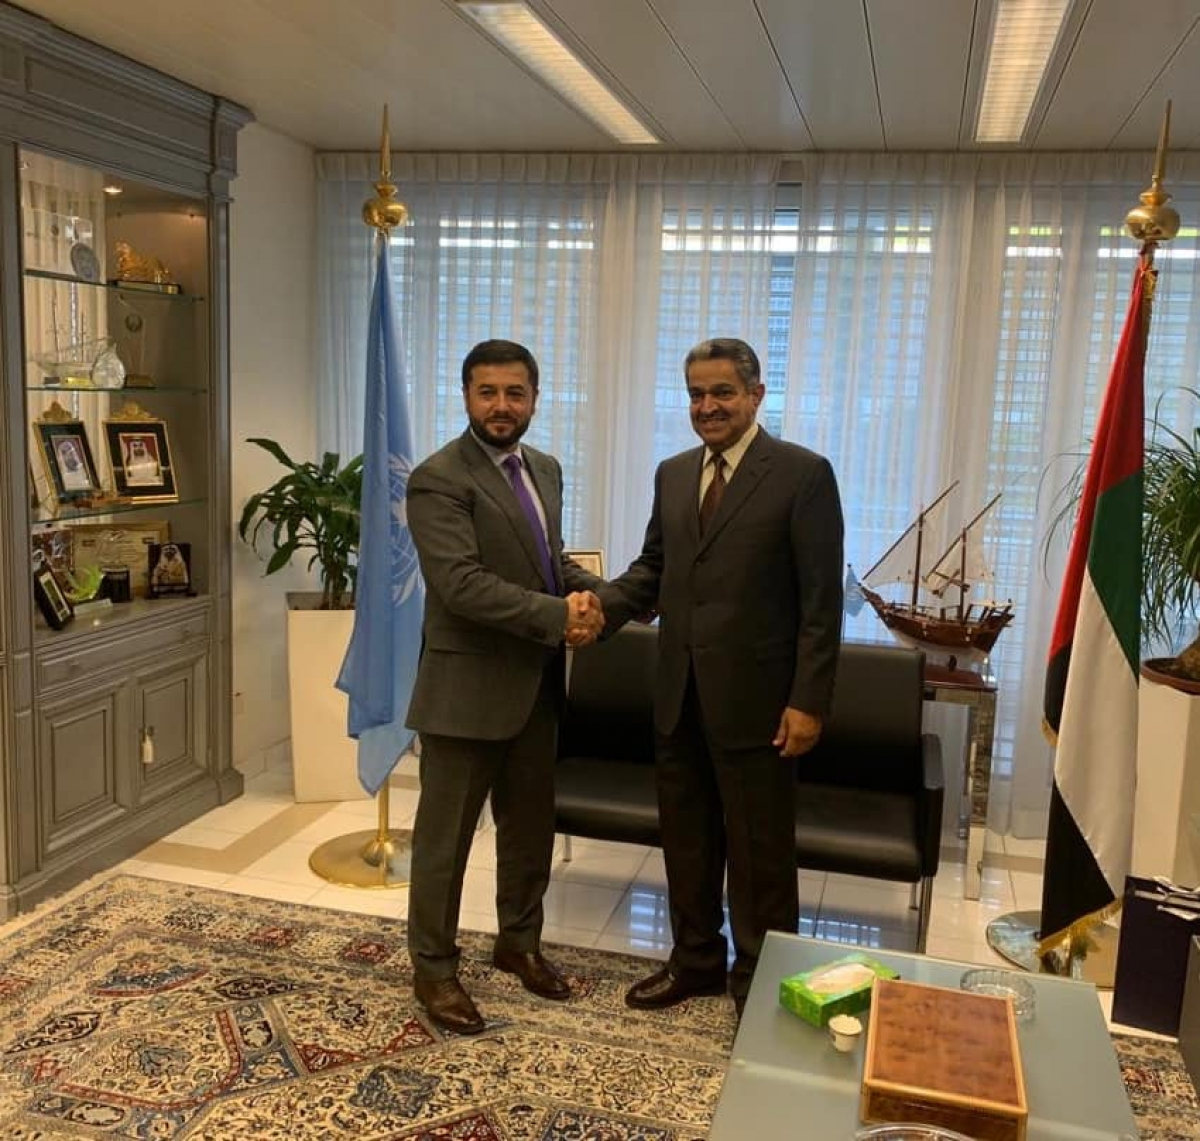 Ambassador Nasir Andisha paid a courtesy visit with the UAE Ambassador Obaid Salem Saeed Nasser Alzaabi.